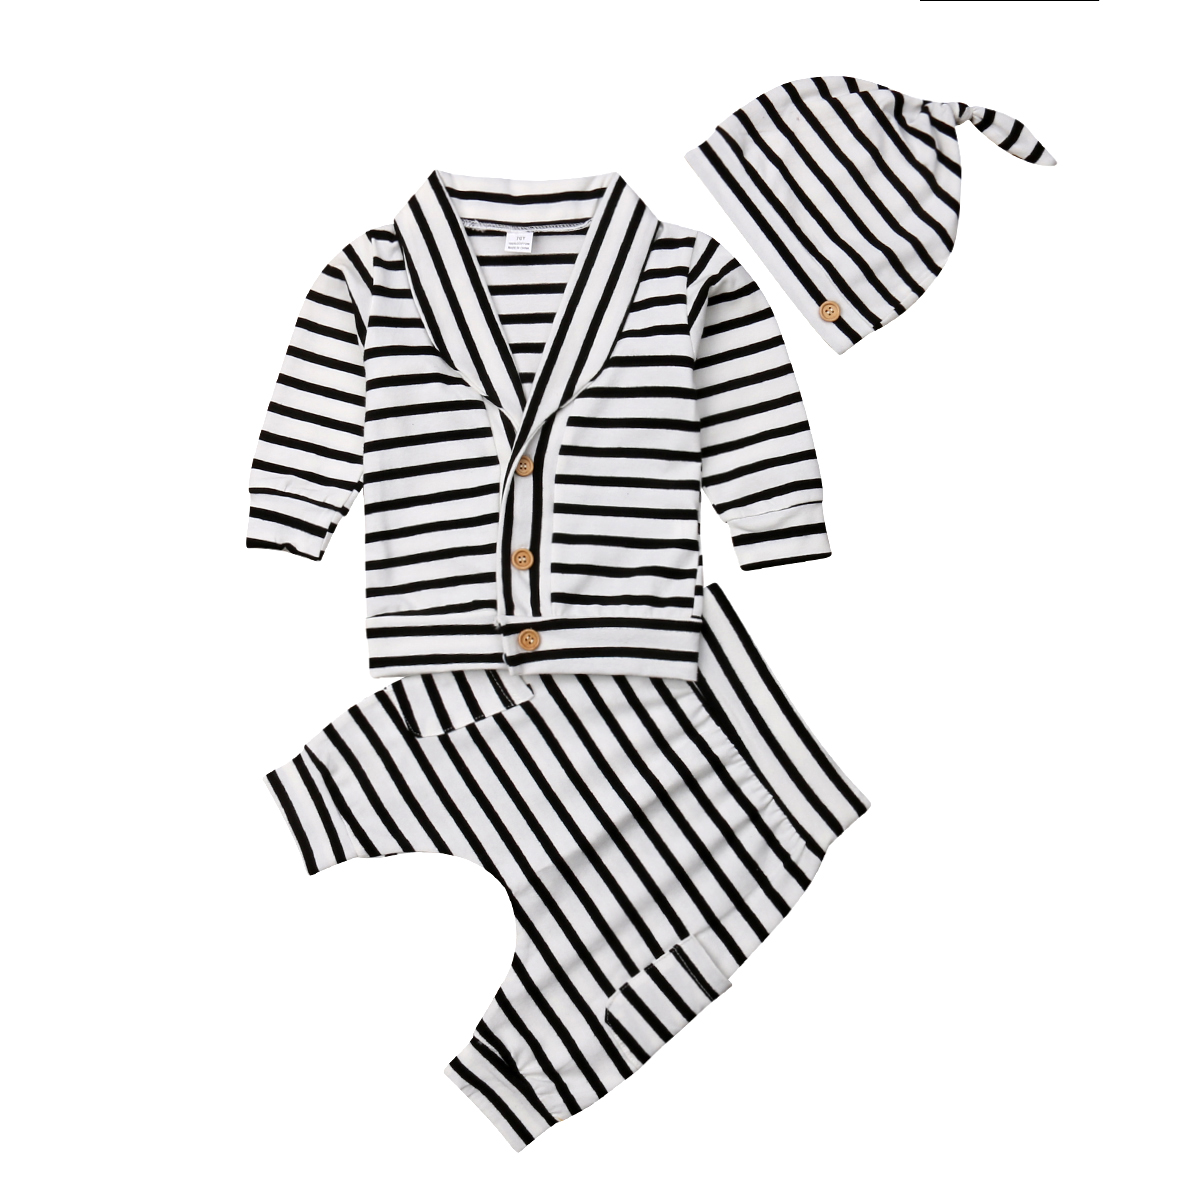 Infant Newborn Baby Boy Clothes Long Sleeve Striped Tops Pants Hat Outfit Set